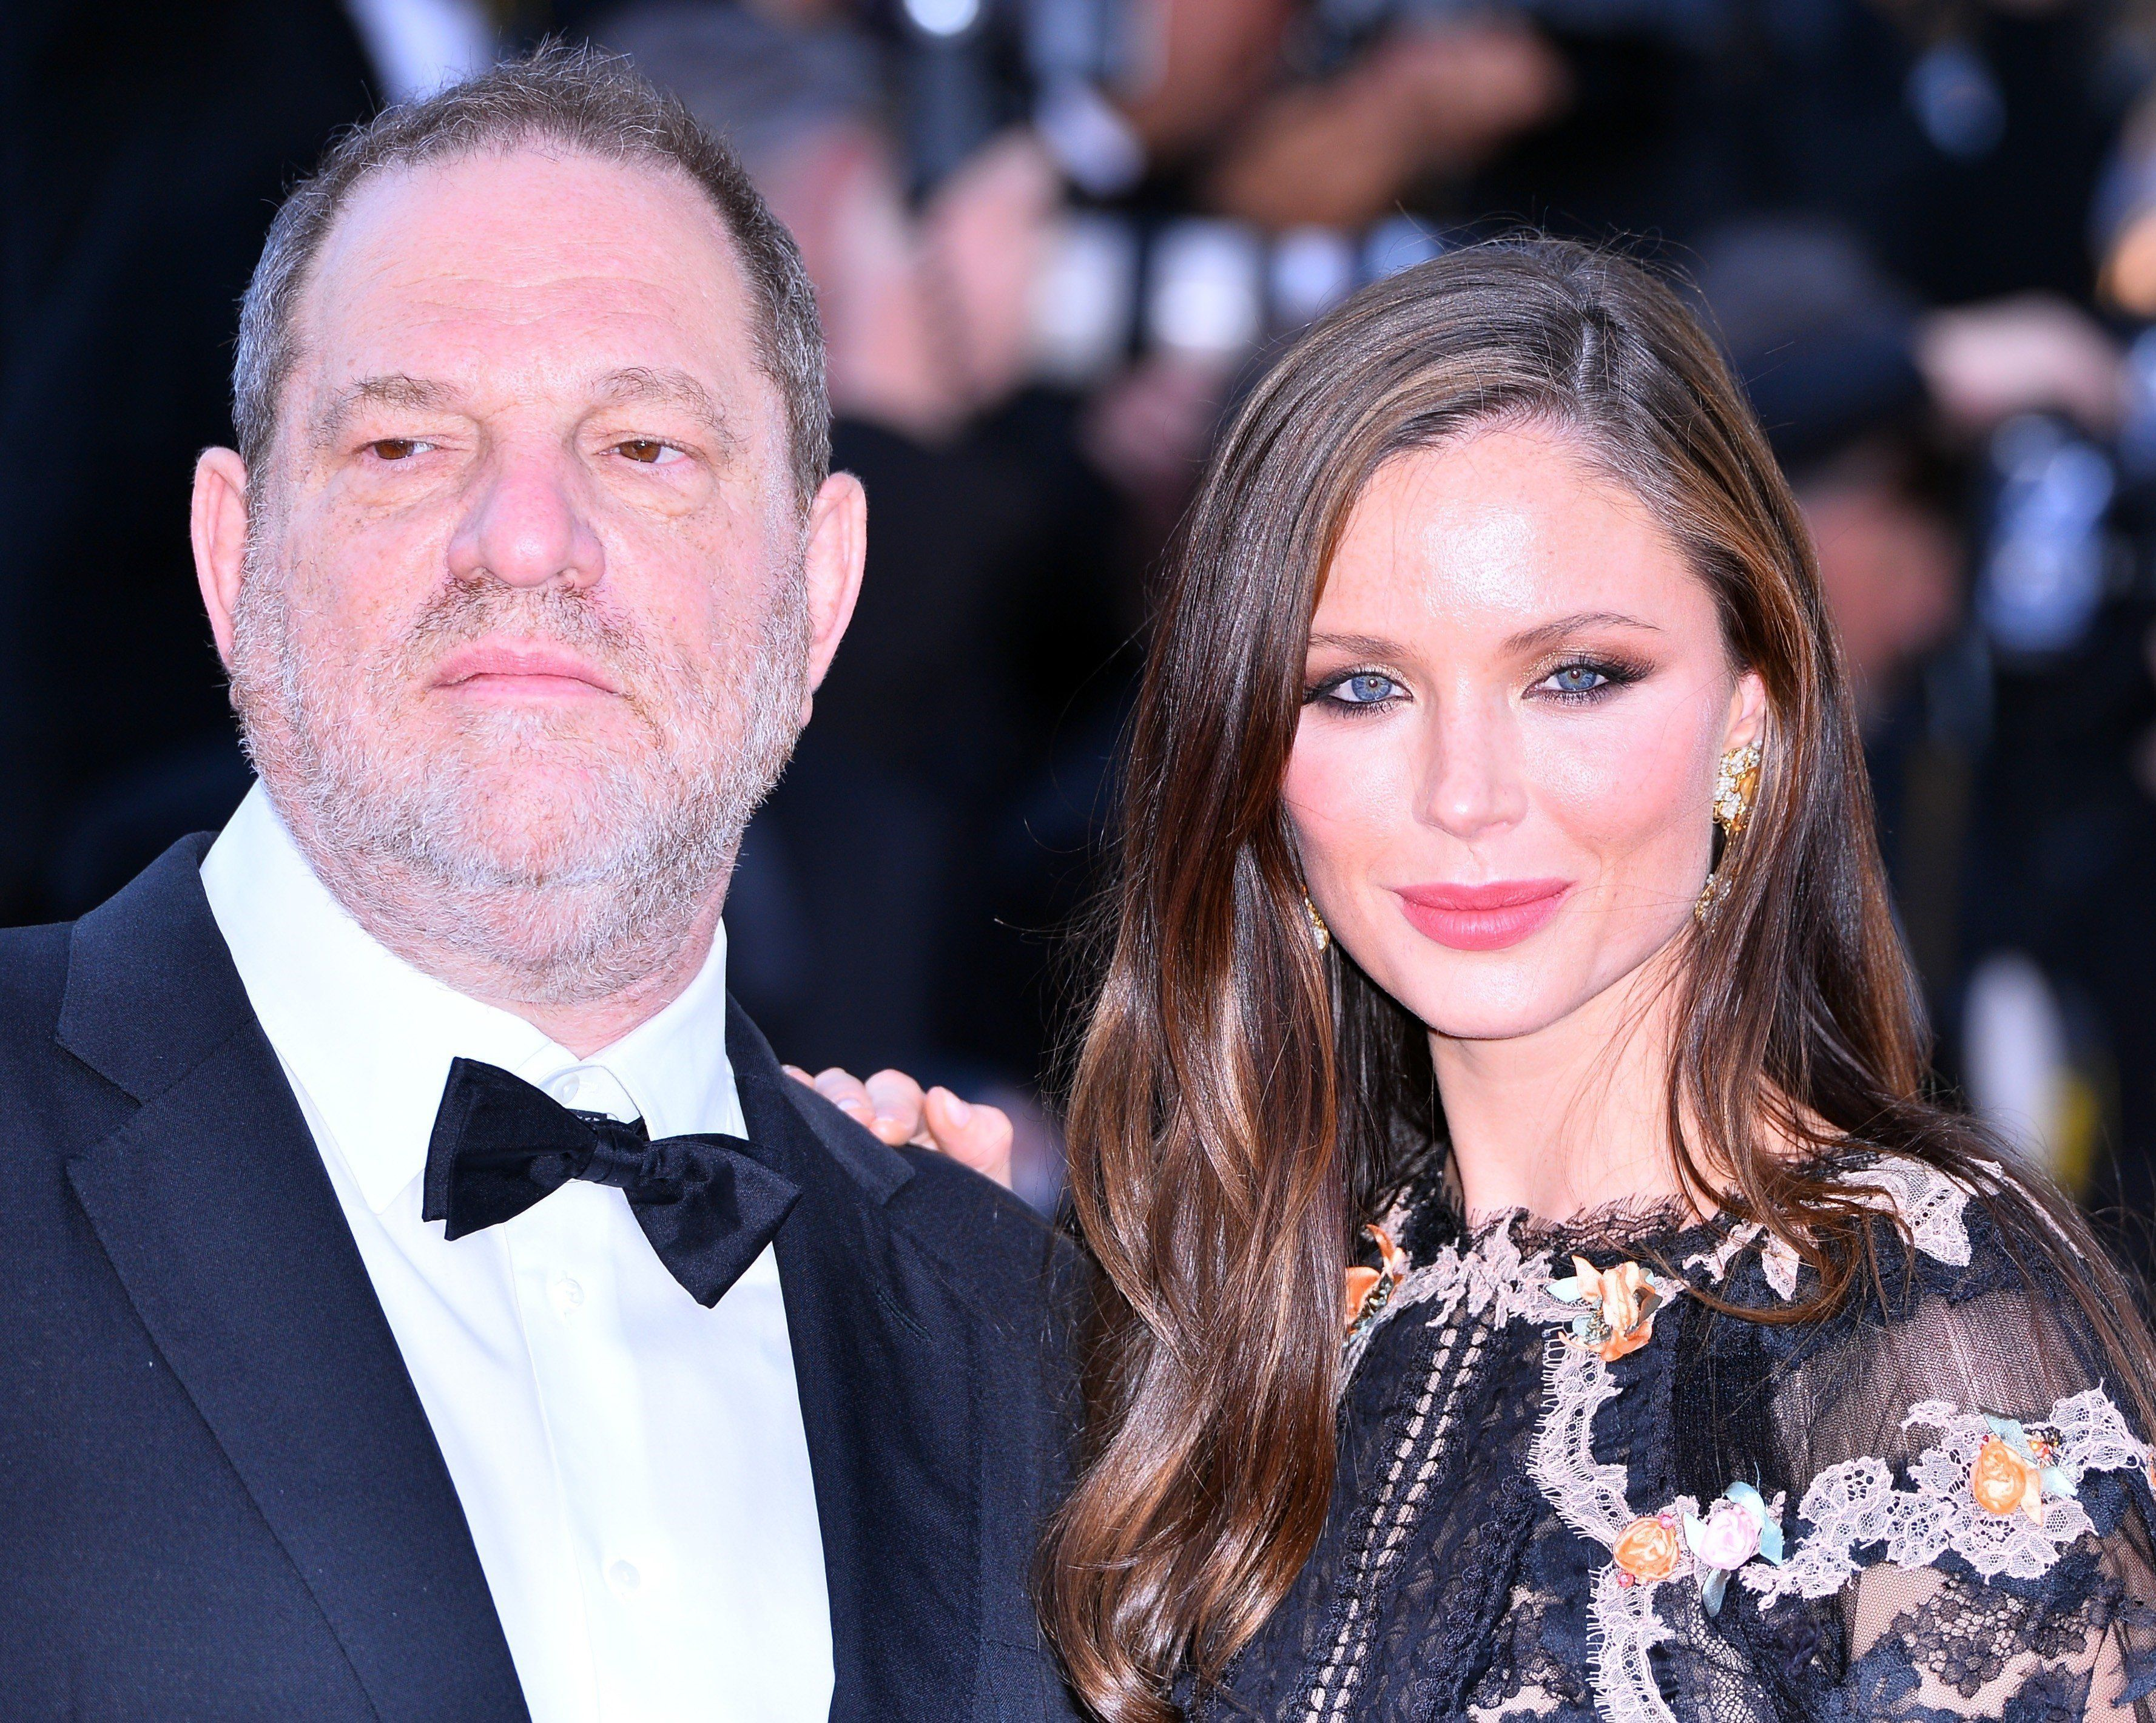 Harvey Weinstein and Georgina Chapman attend the Cannes Film Festival in France in May 2015.